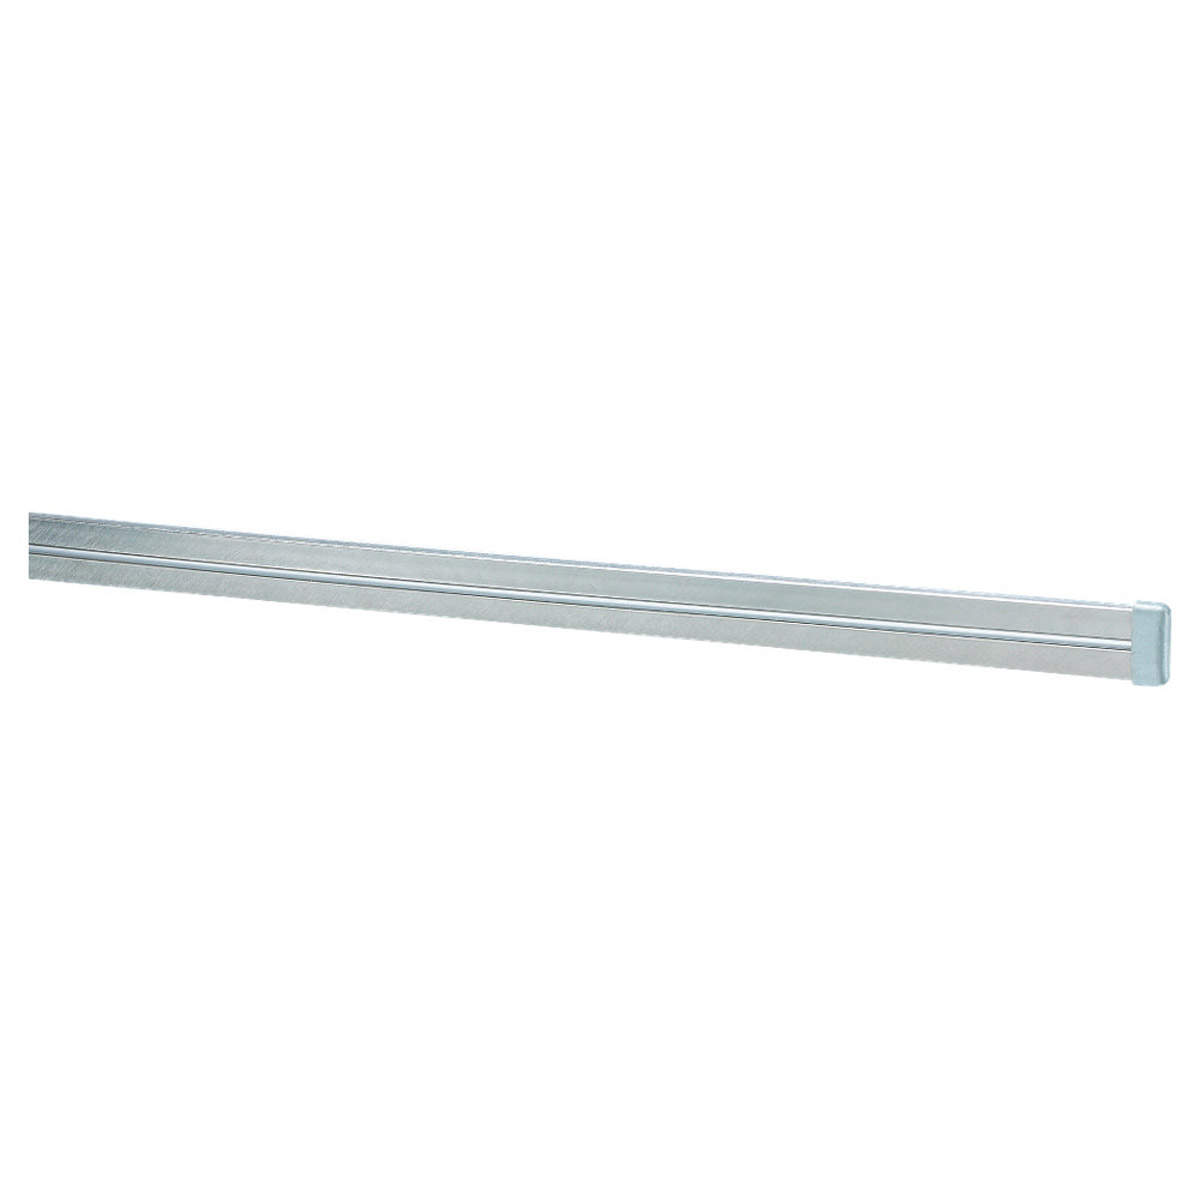 Sea Gull Lighting Ambiance Rtx Eight Foot Rail in Brushed Stainless 95301-98